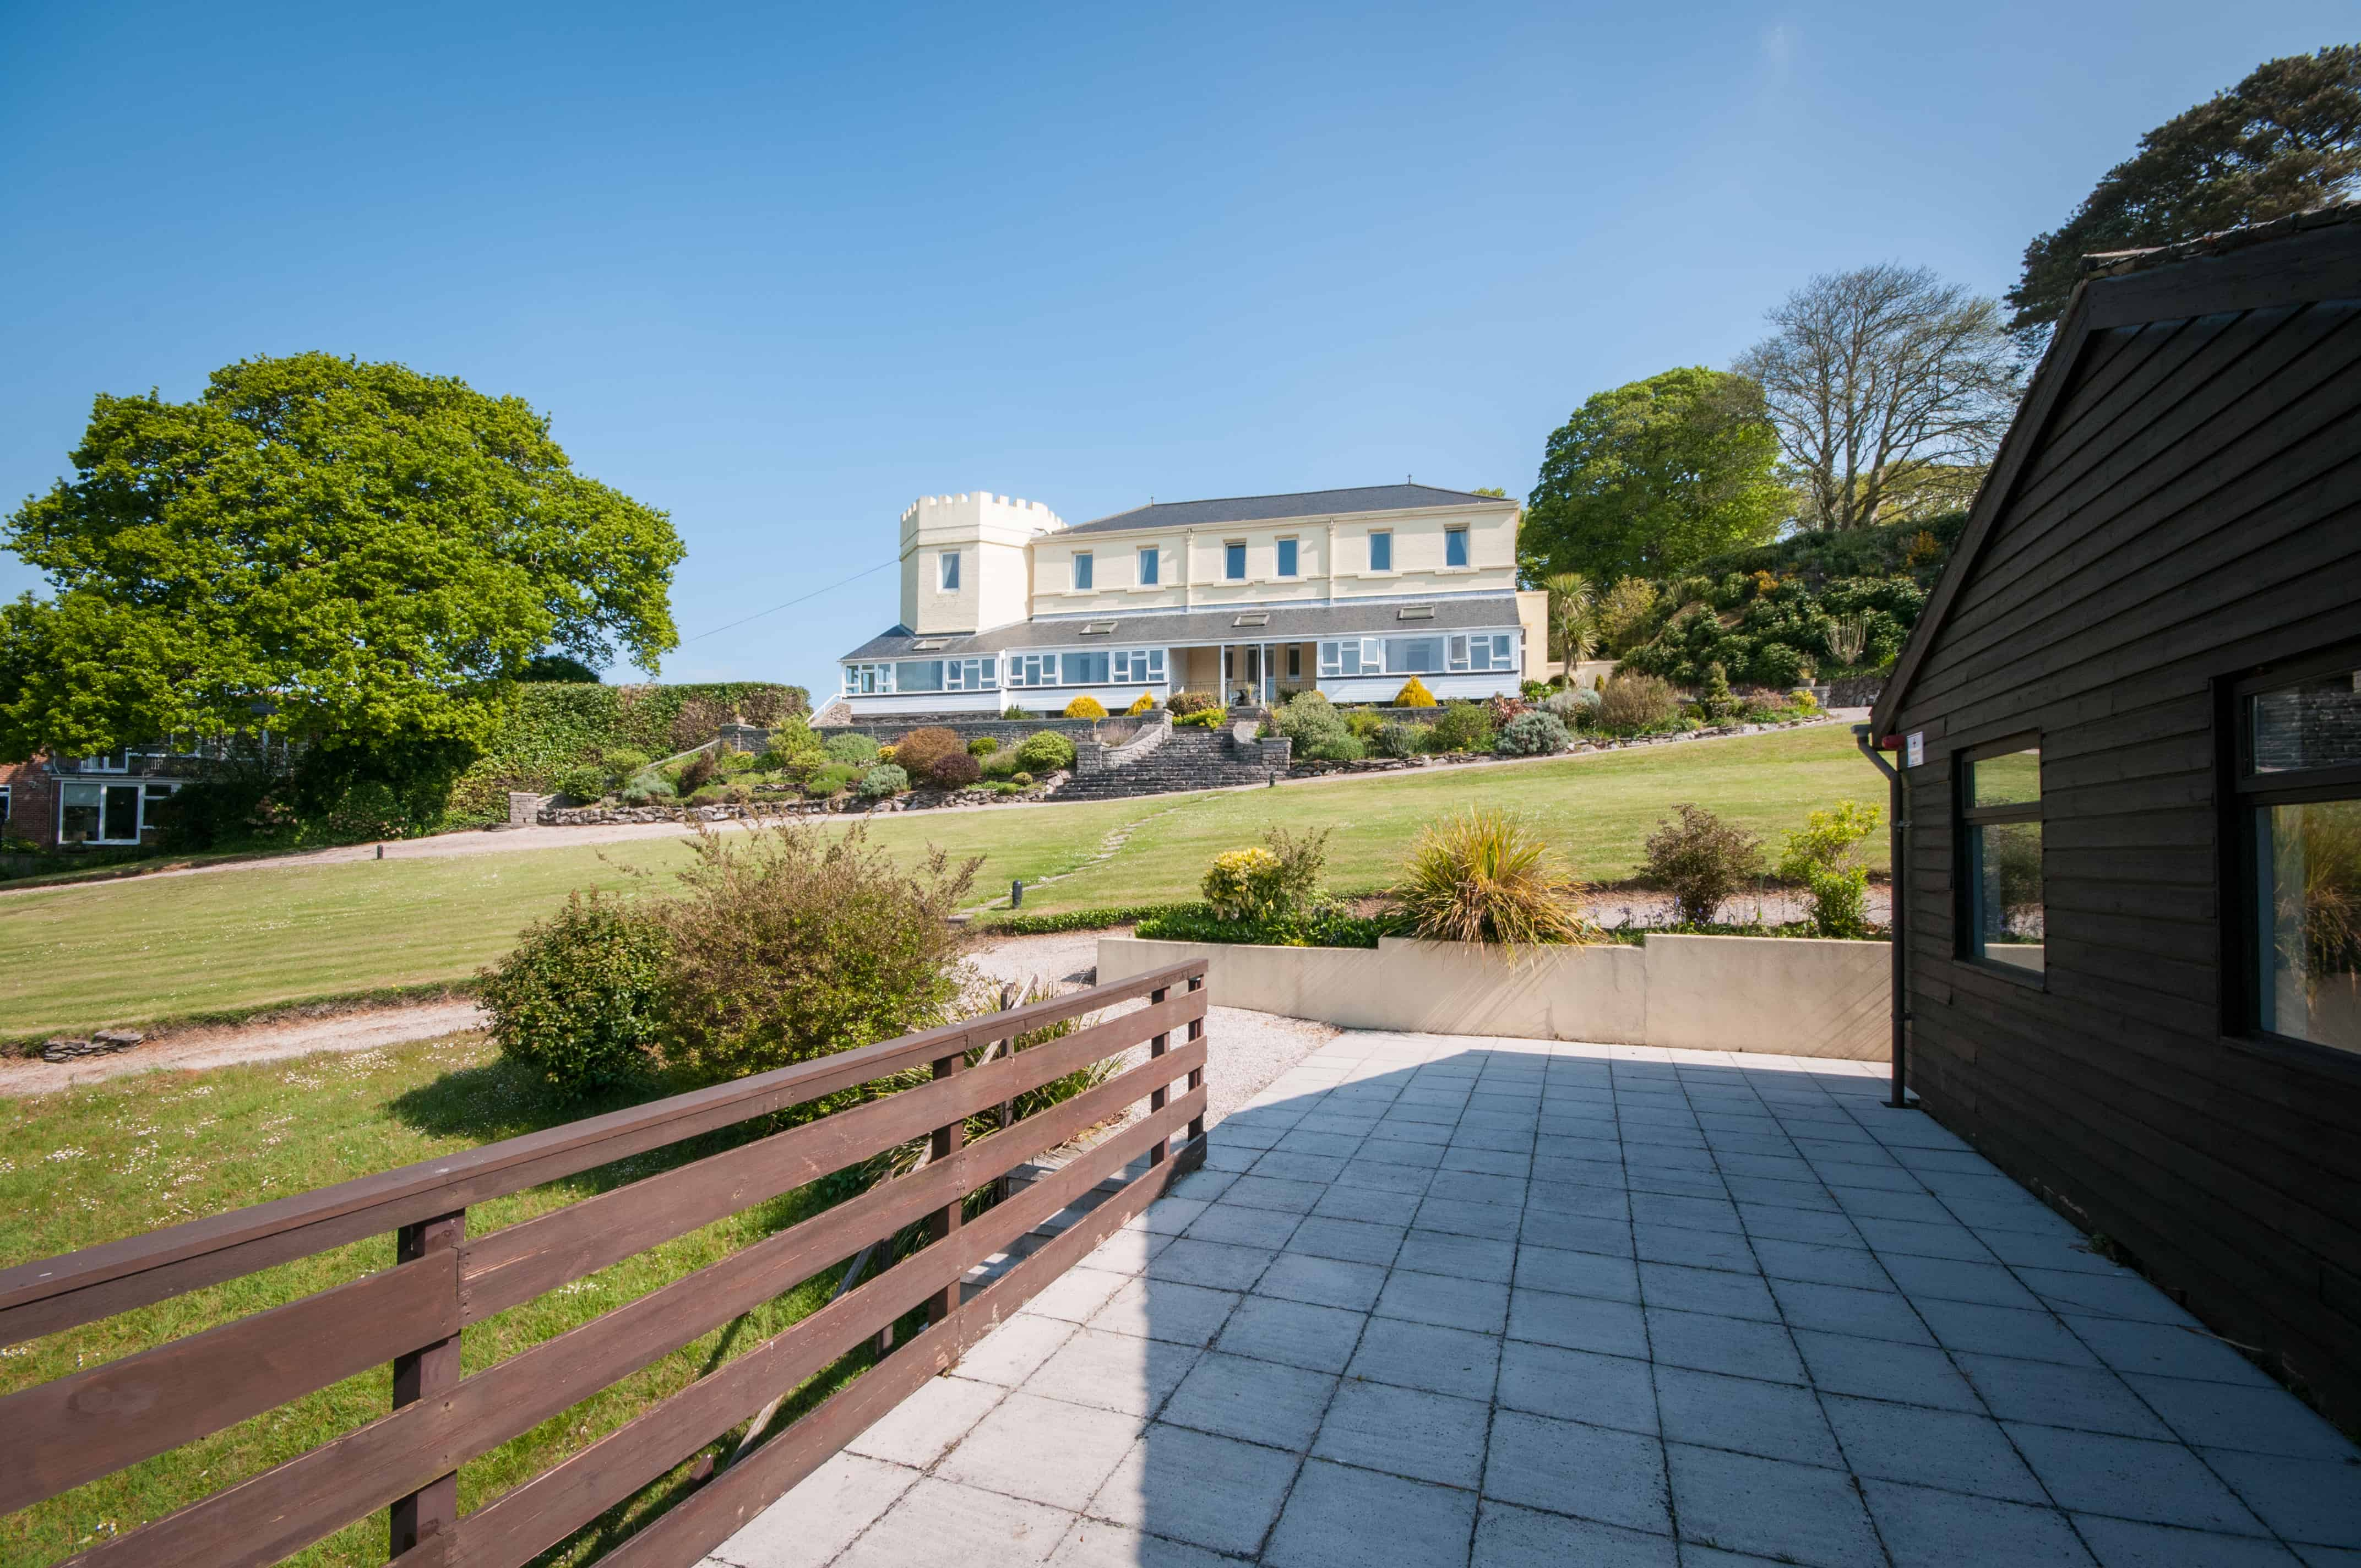 Kingswear Park Club | Self-catering holiday apartments in Devon